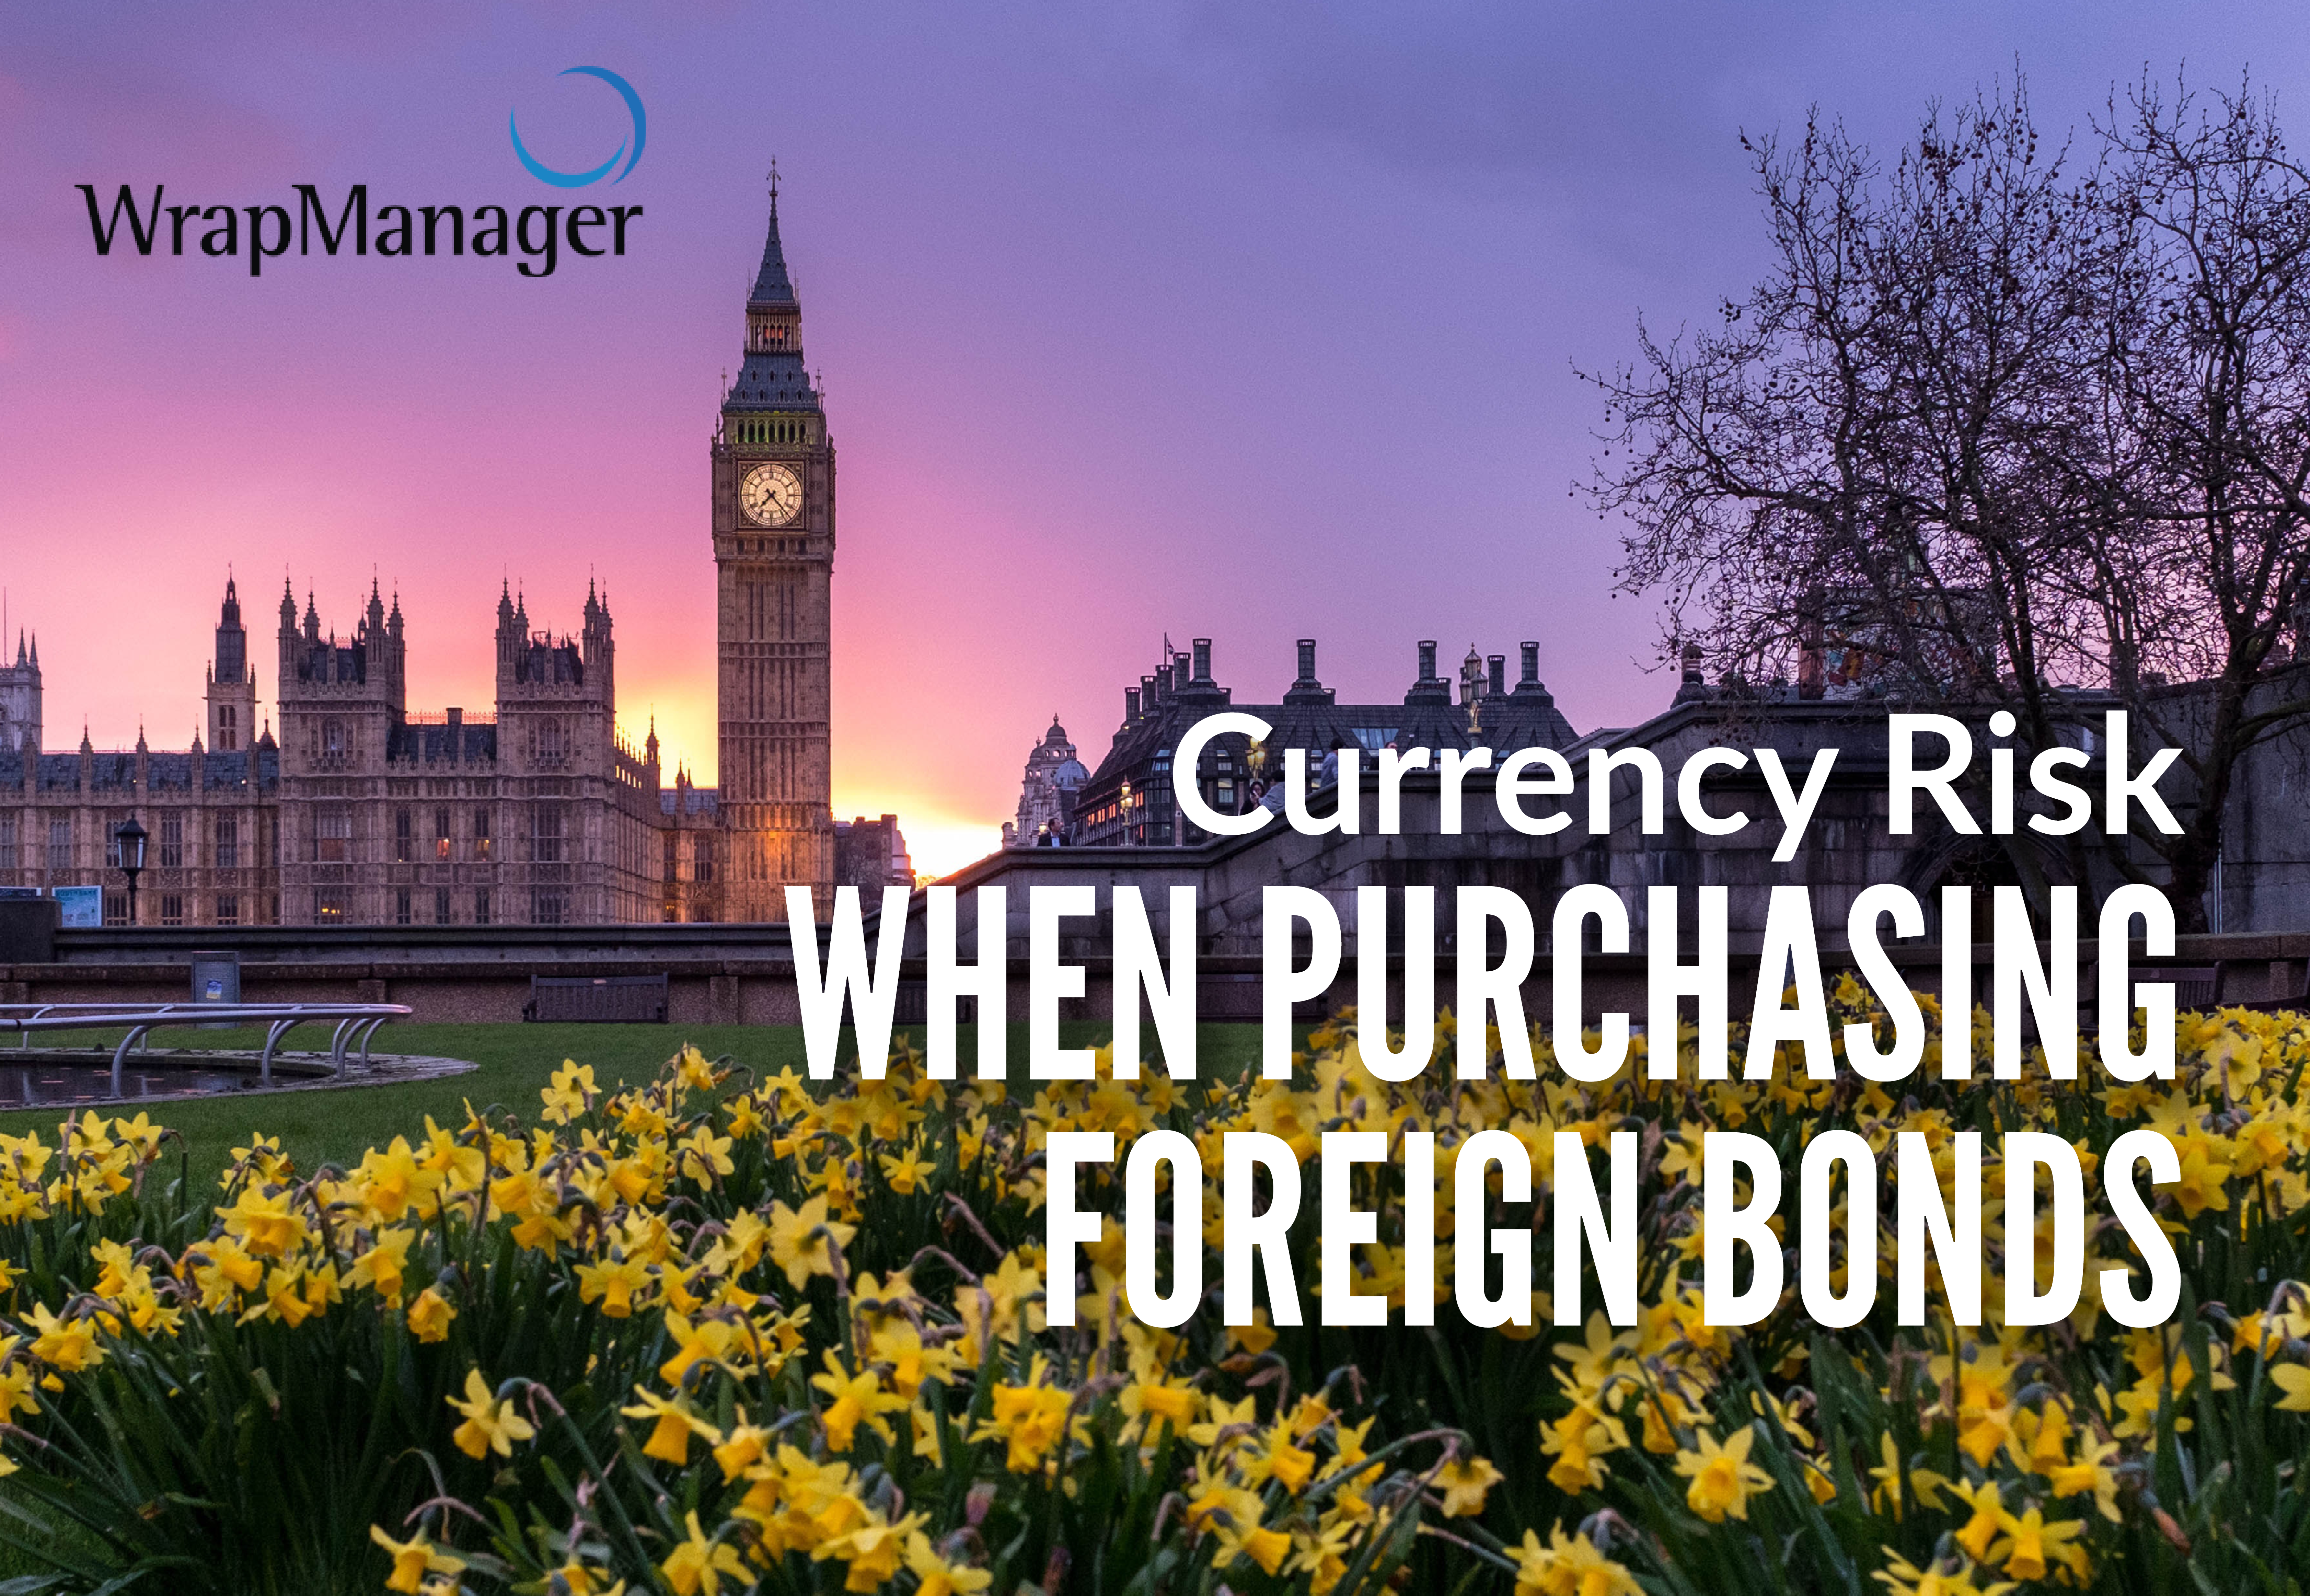 Currency Risk in Purchasing Foreign Bonds.png